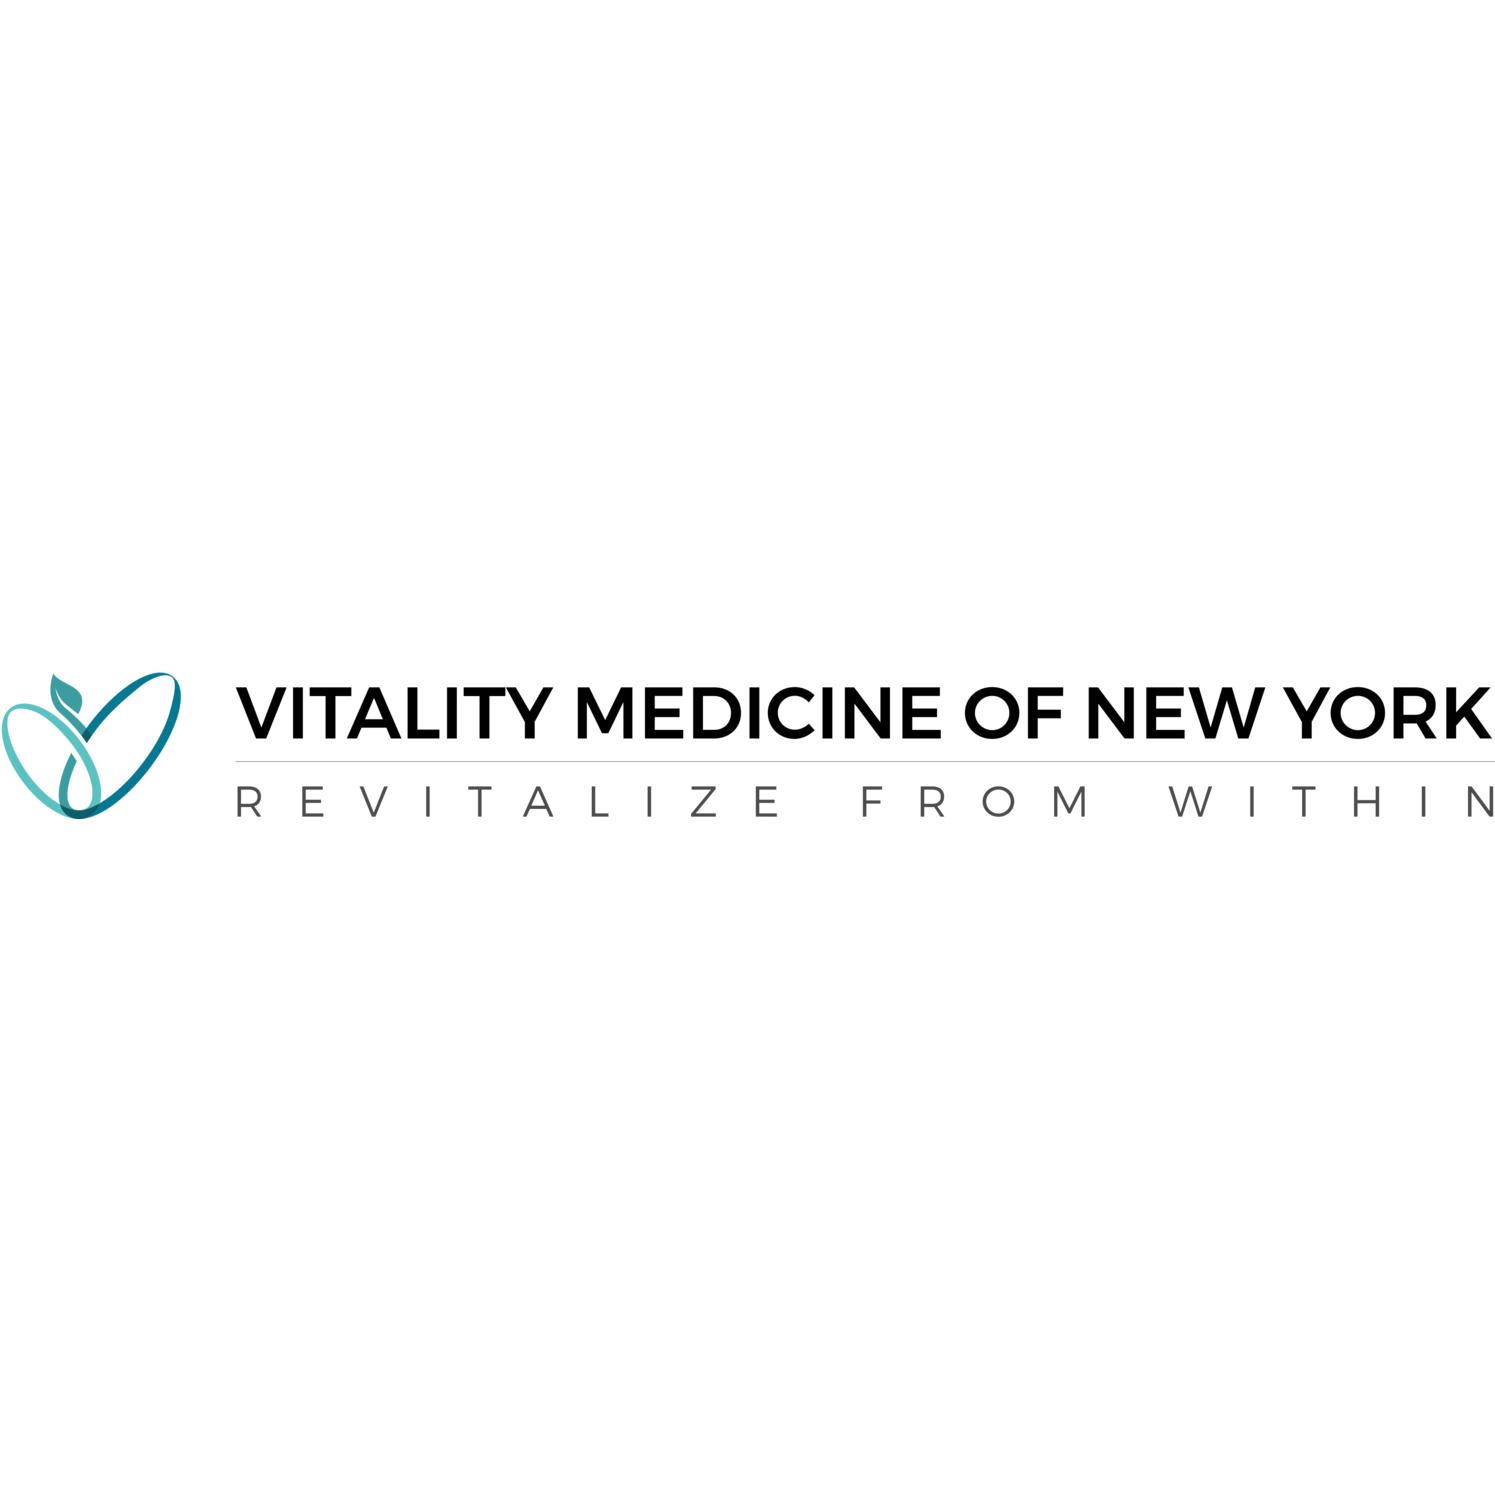 Vitality Medicine of New York